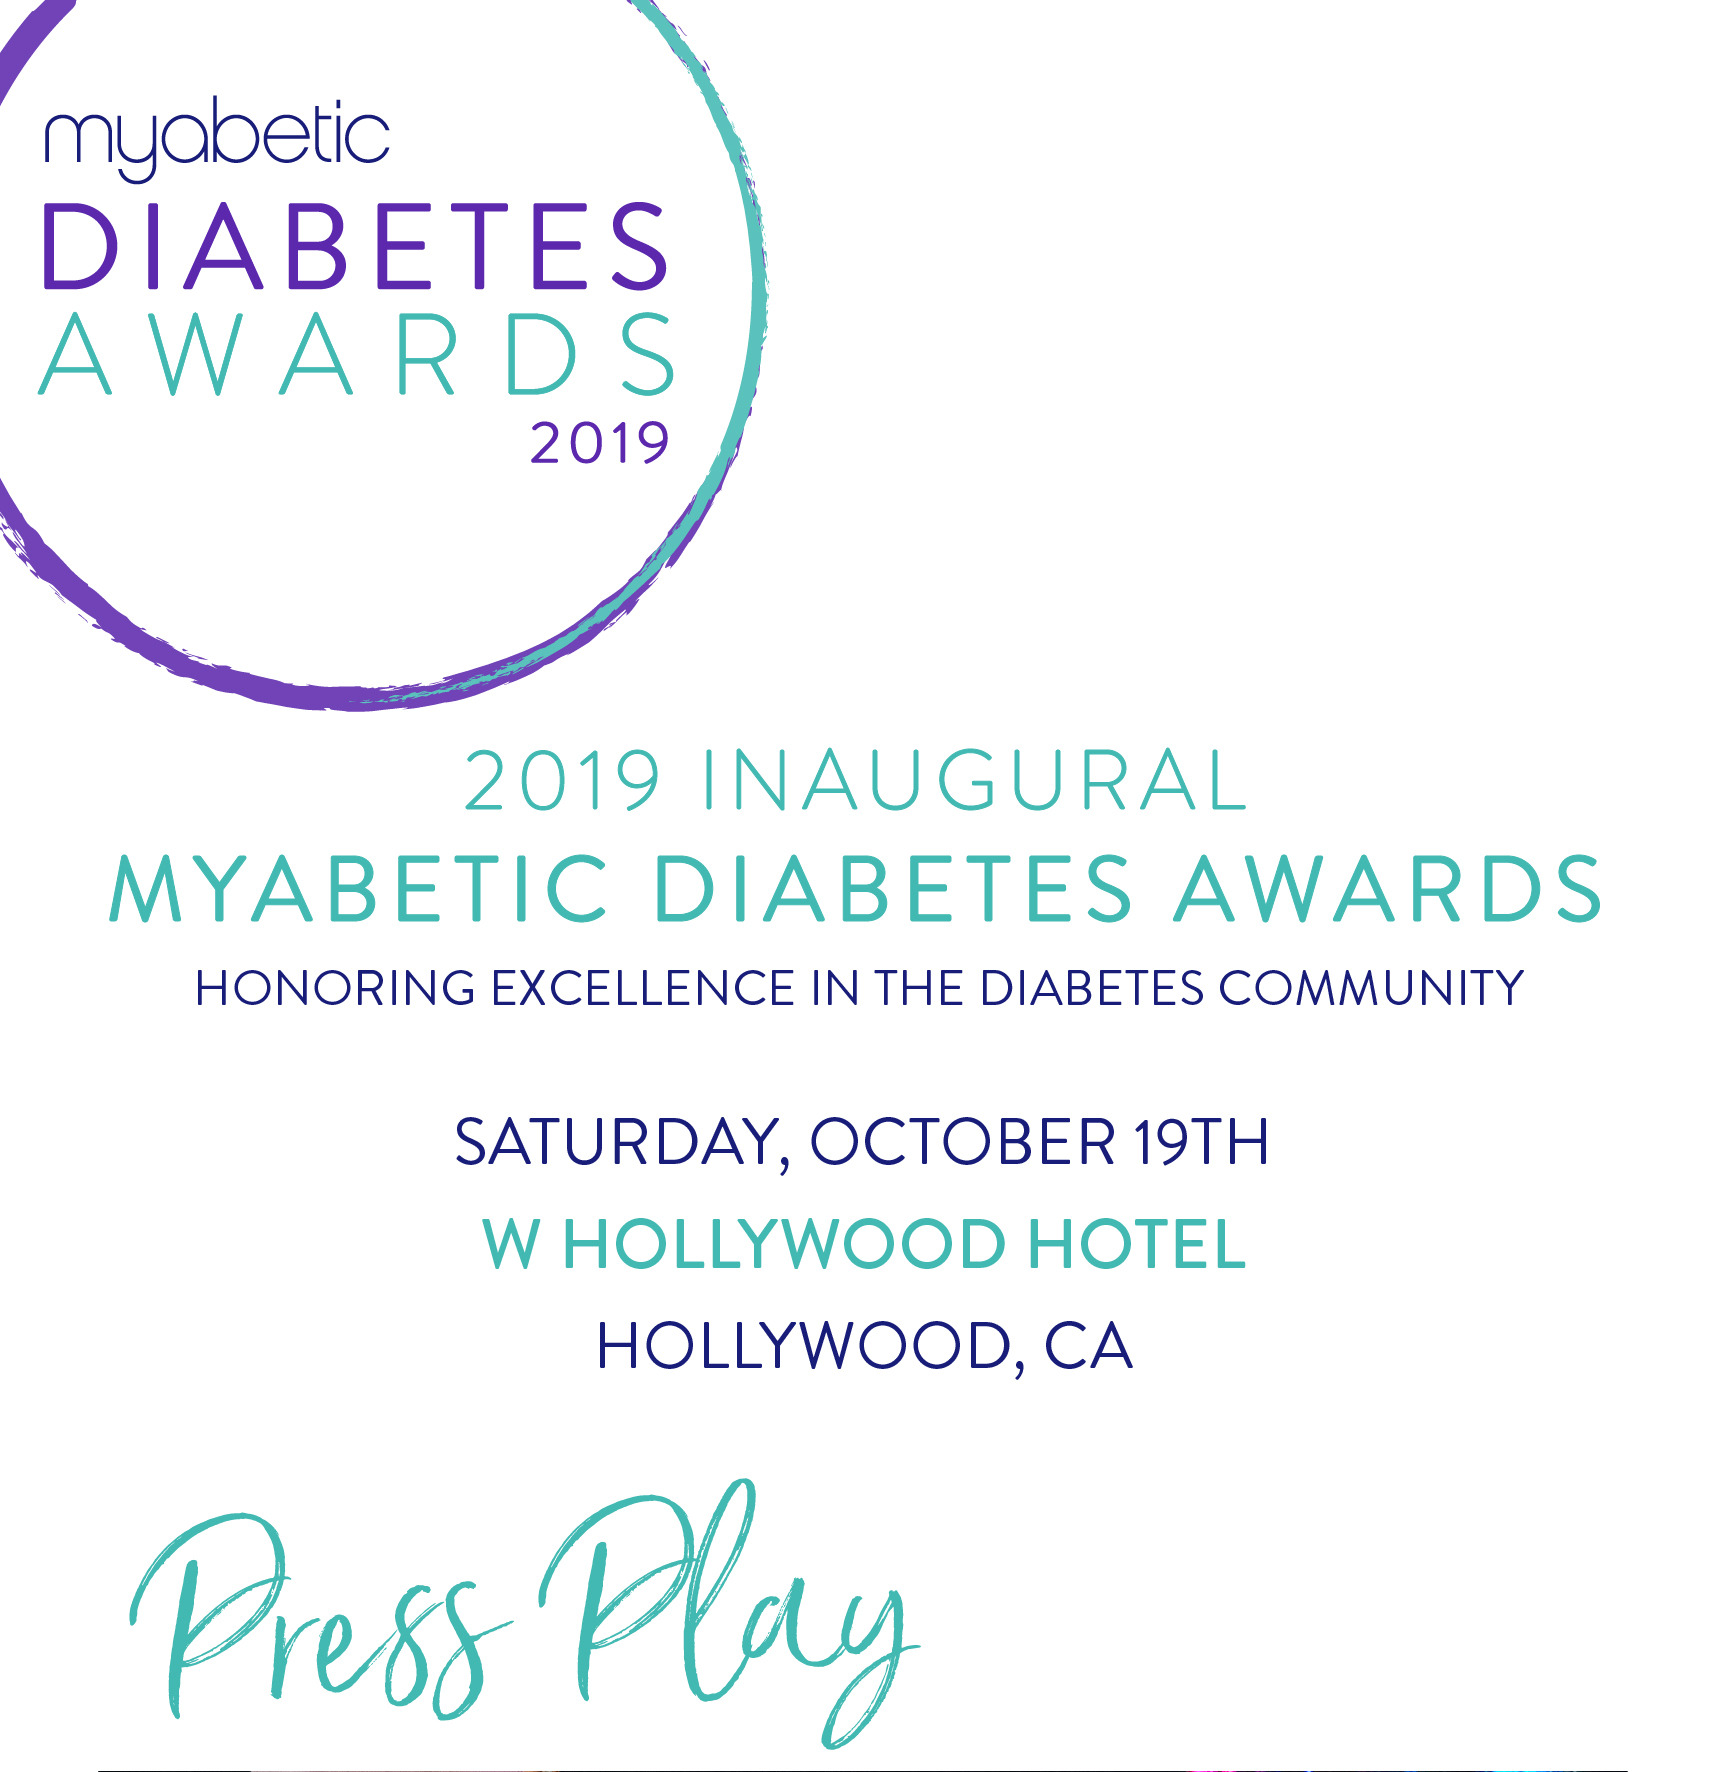 Myabetic Diabetes Awards